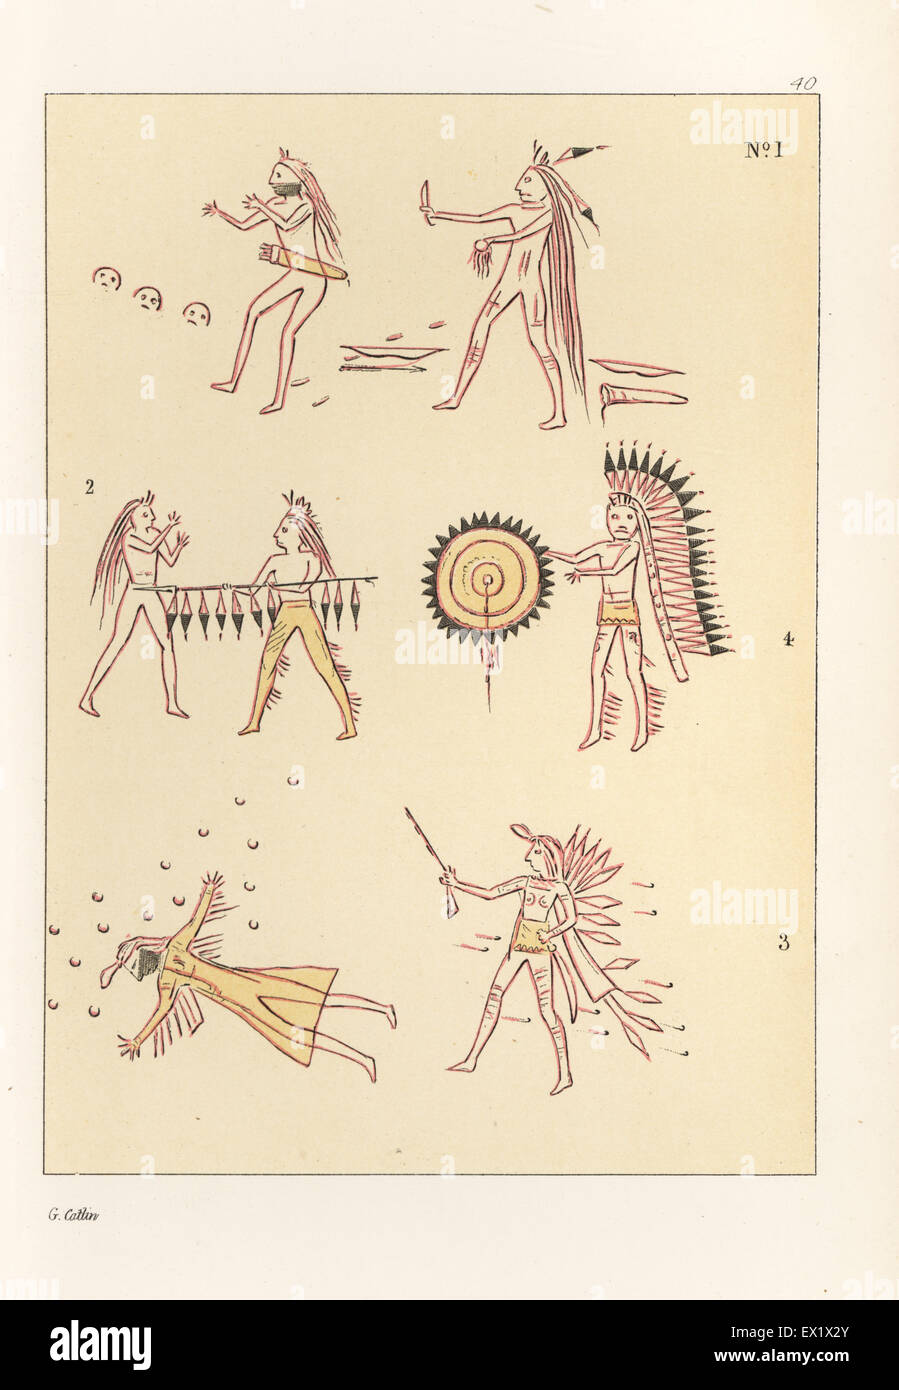 Battle scenes of the decorated robe of Mandan second chief Mah-to-toh-pa, Four Bears. Killing a Sioux warrior with - Stock Image